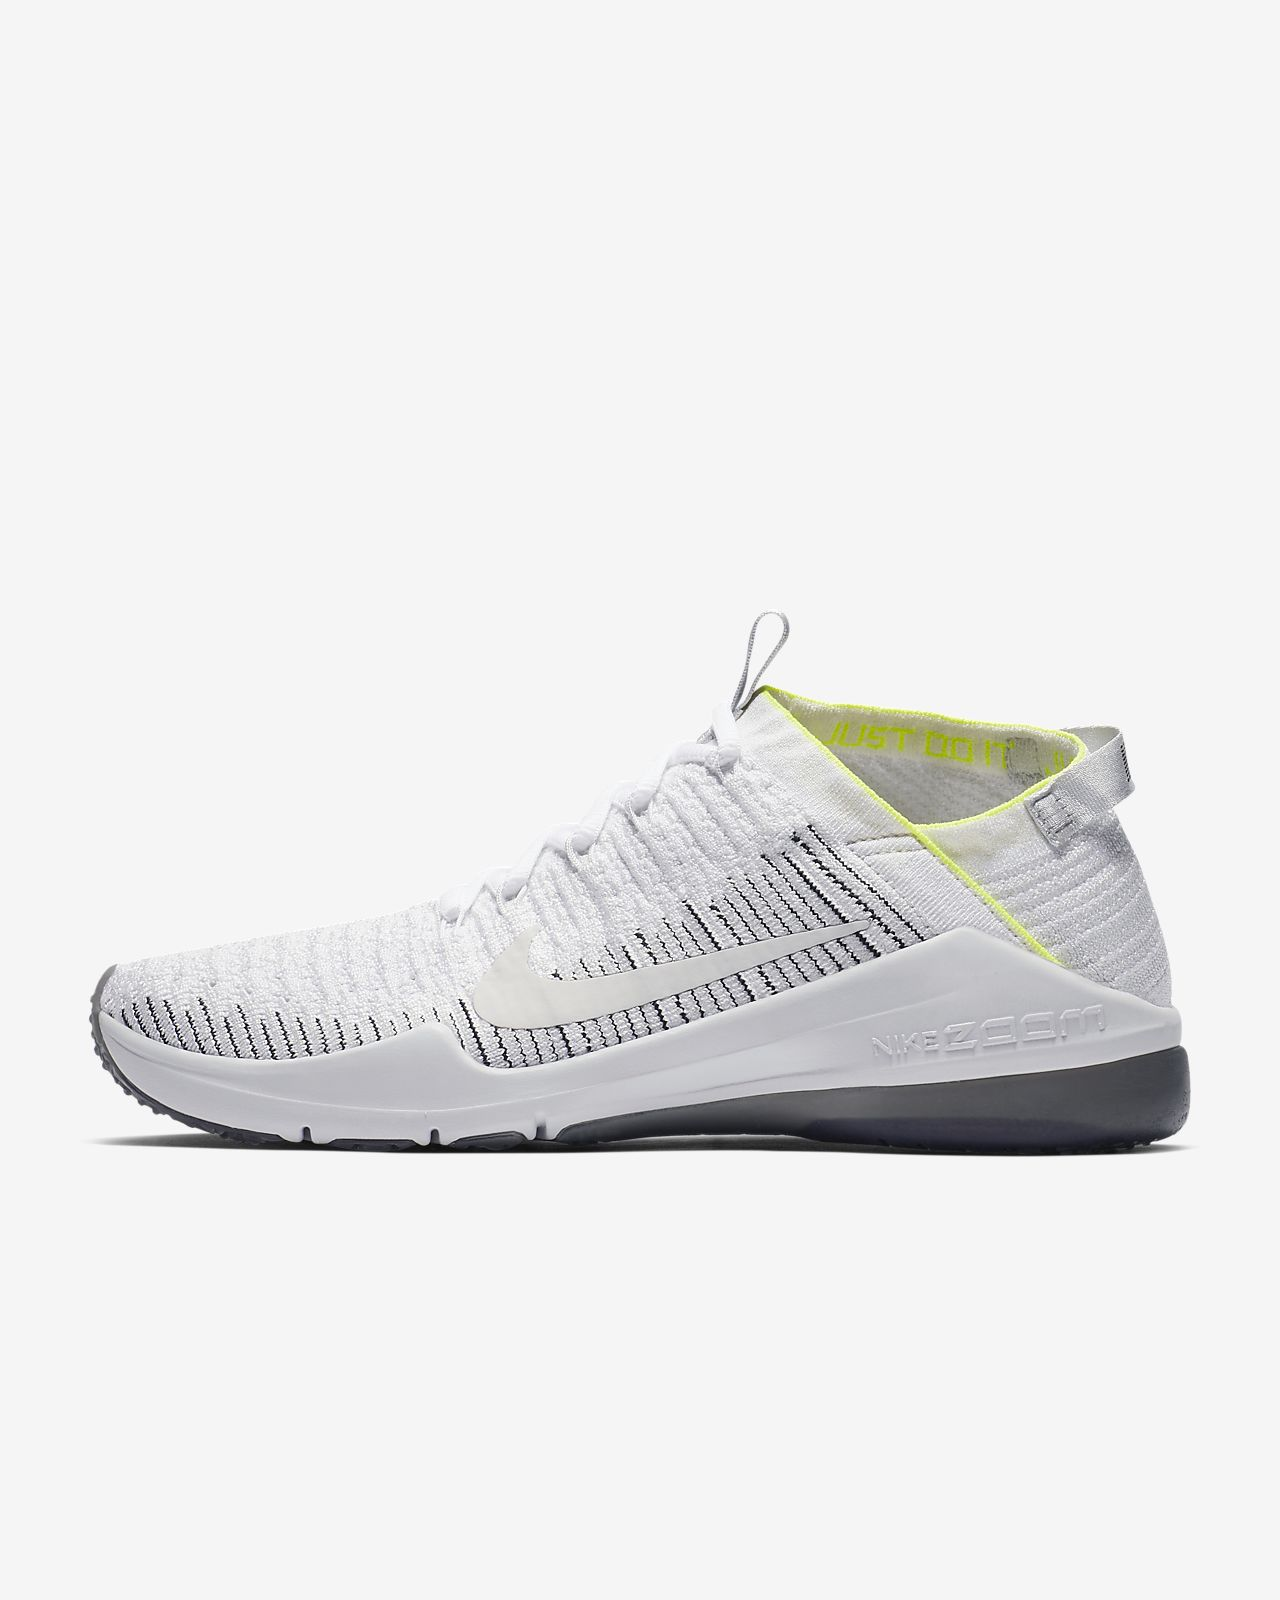 059f93849c13a8 Nike Air Zoom Fearless Flyknit 2 Women s Gym Training Boxing Shoe ...